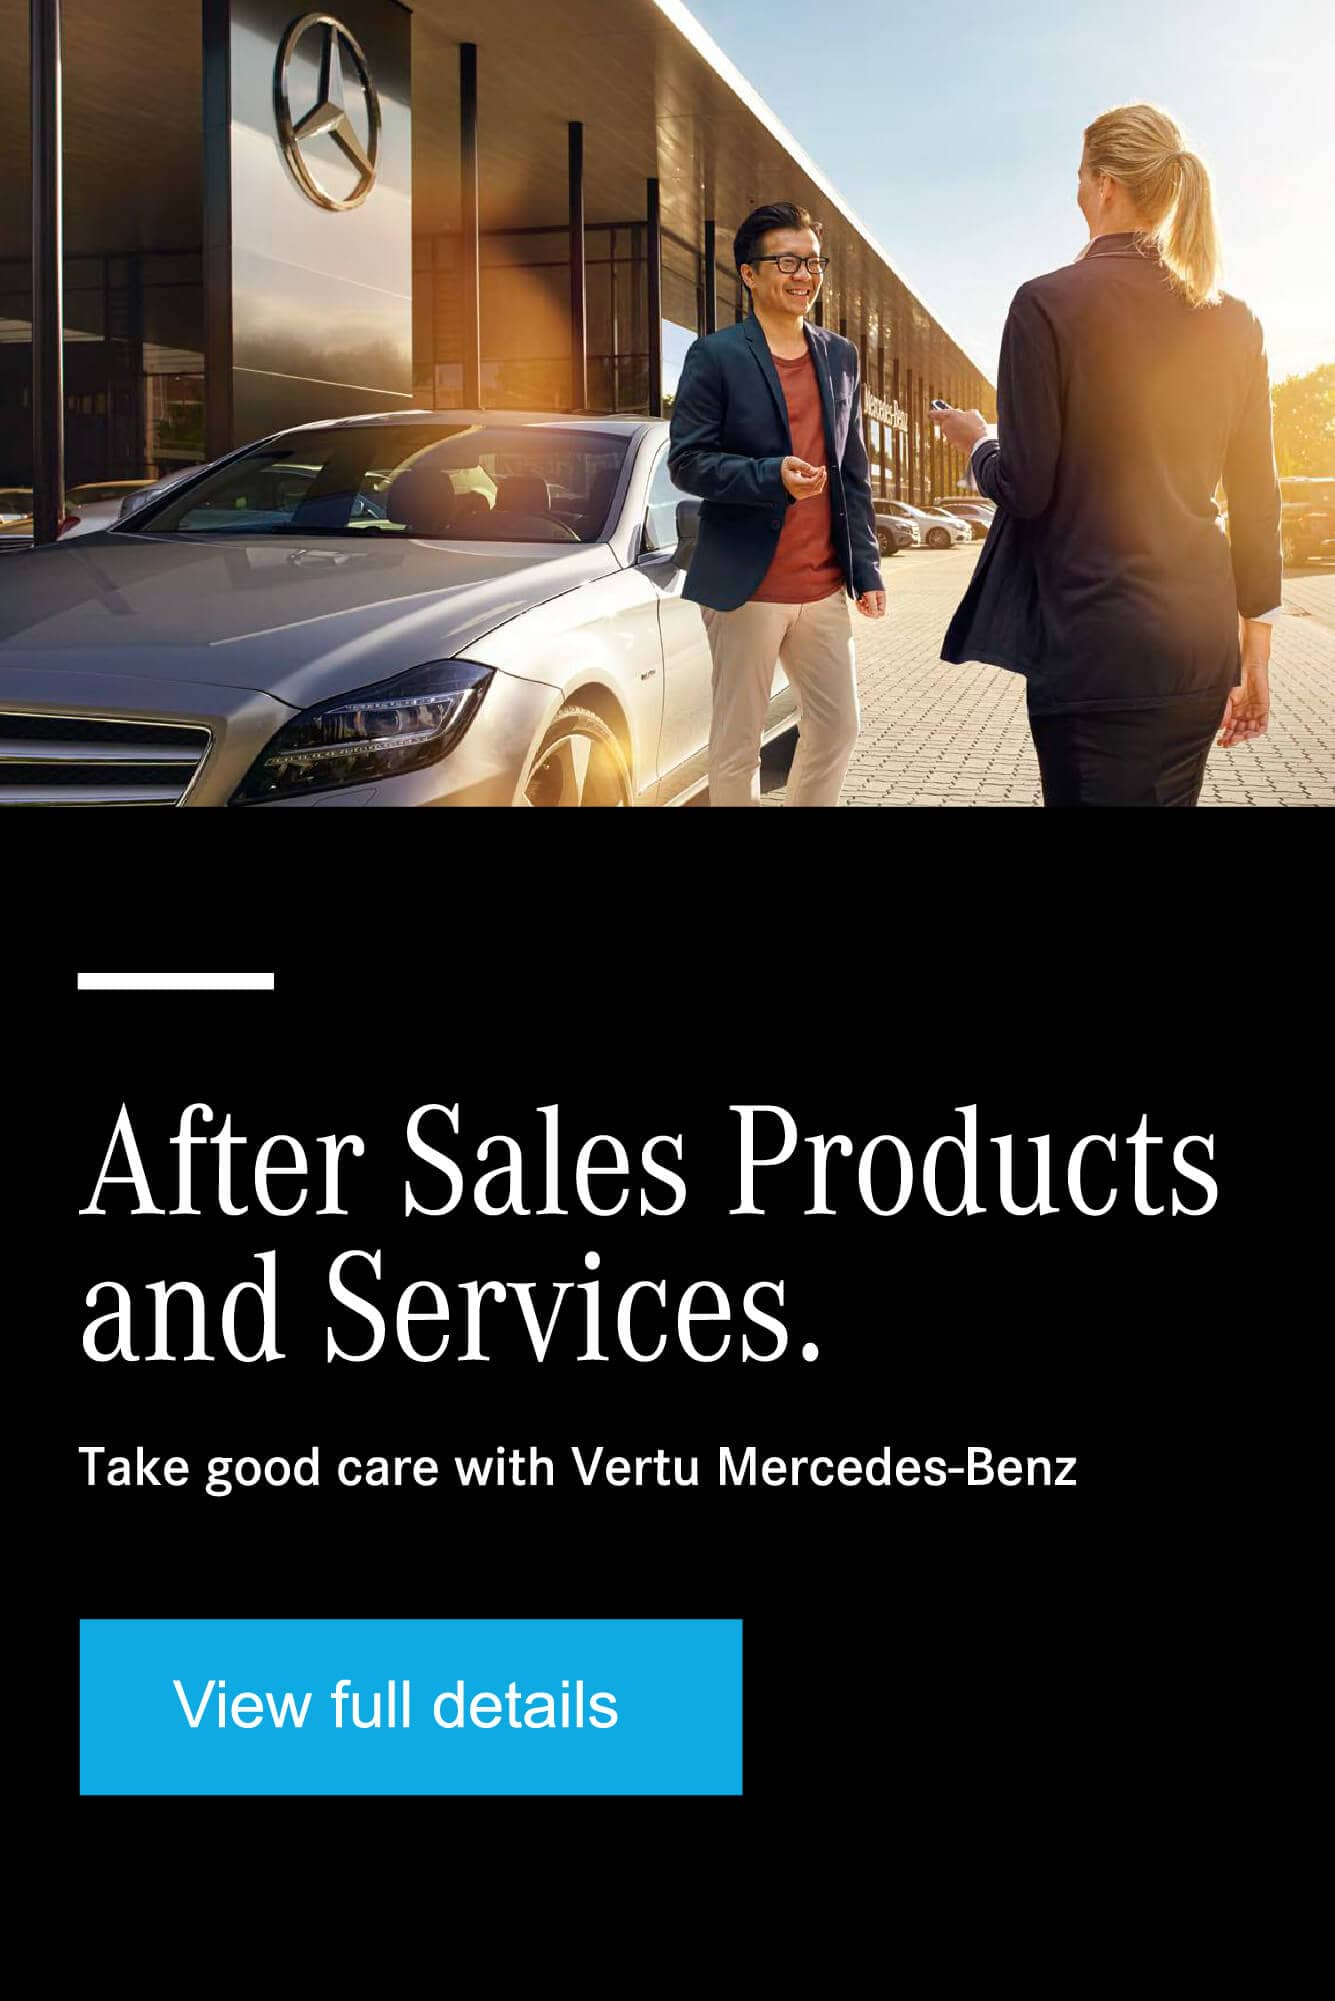 Mercedes-Benz Aftersales